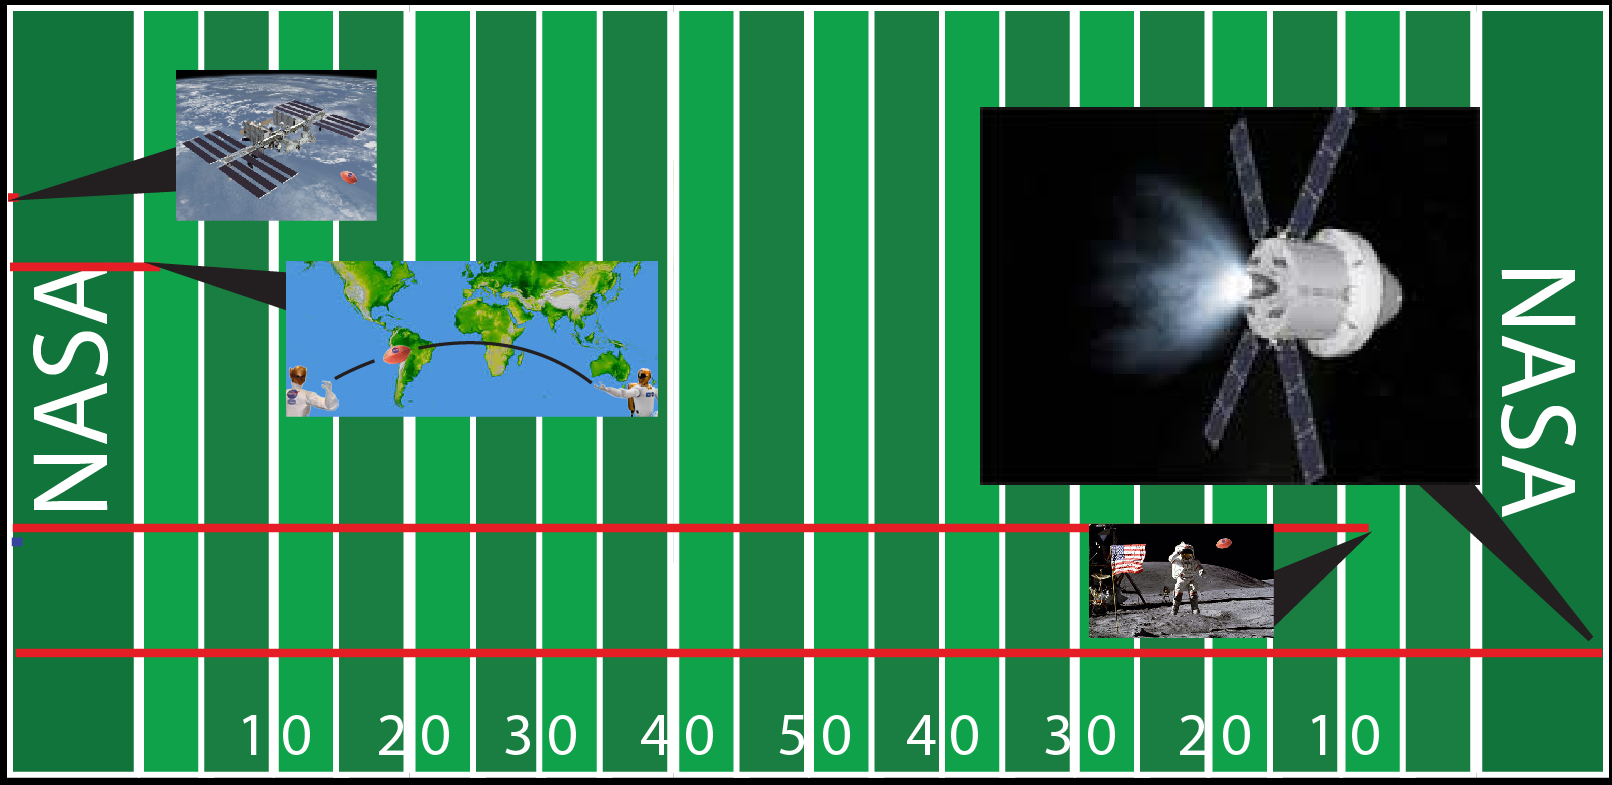 A graphic showing Orion at the opposite end zone of a football field